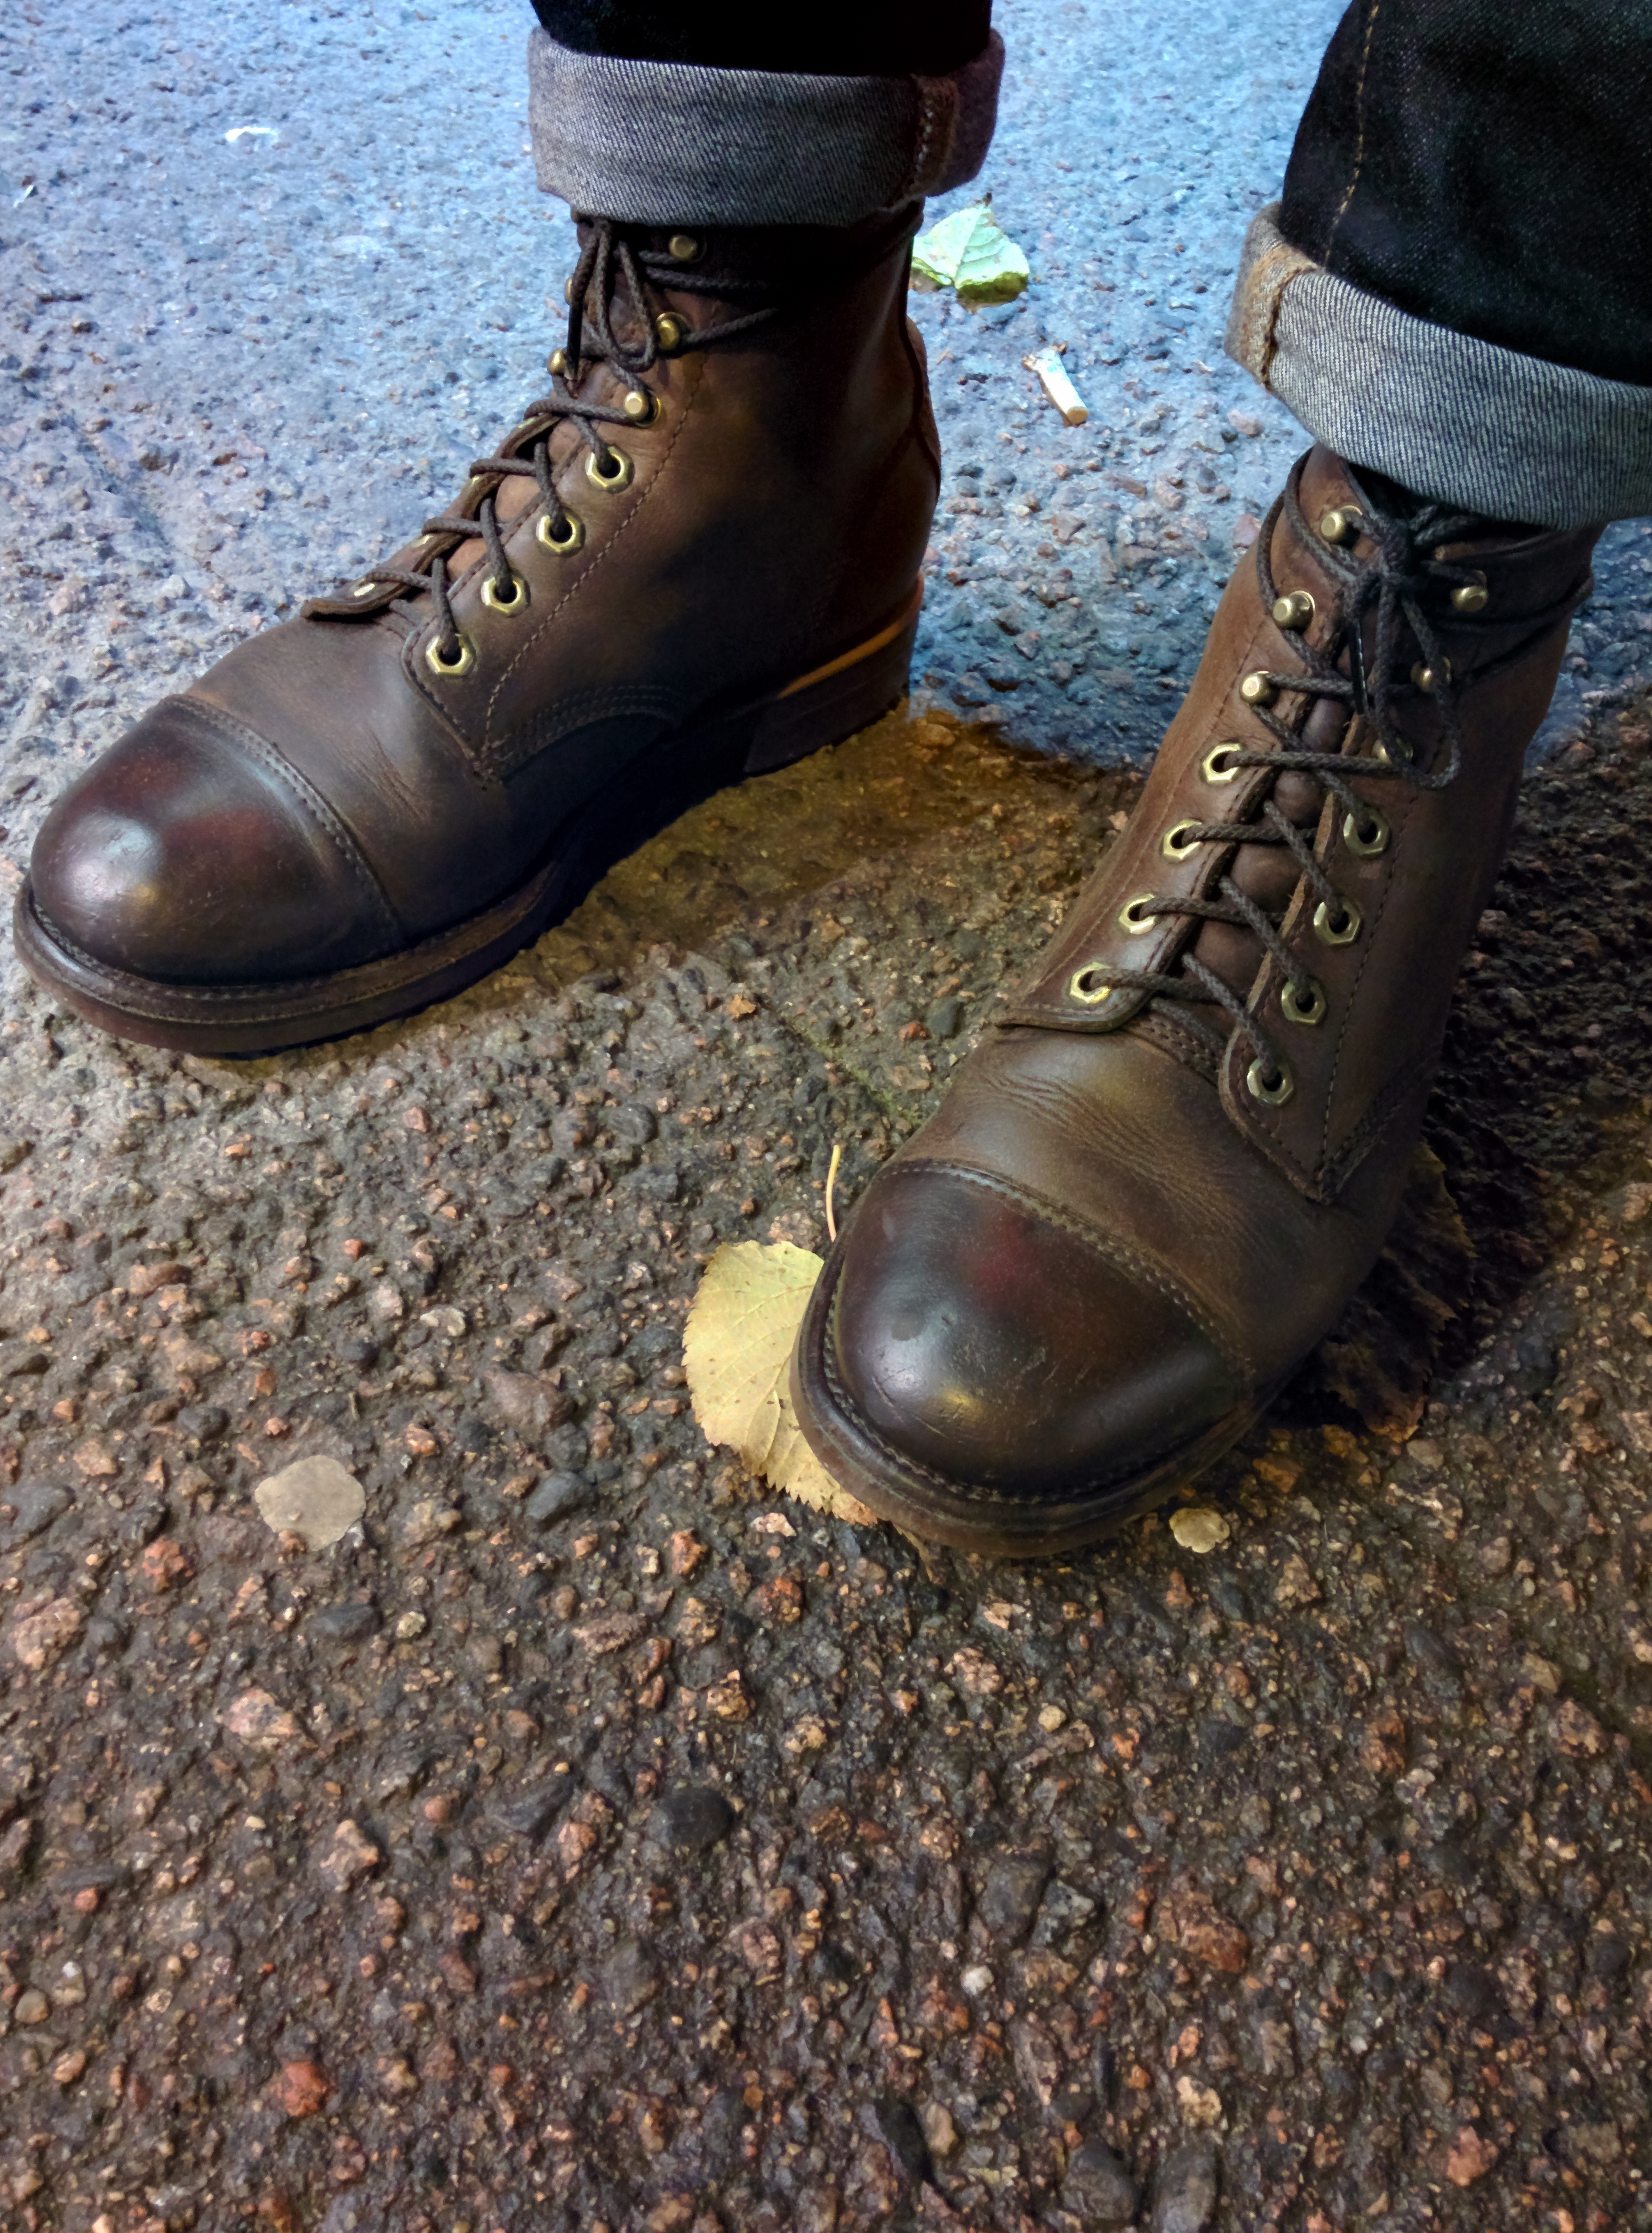 aa333a1df87 Calling all LLBean Katahdin Iron Works Boots owners | Page 89 ...